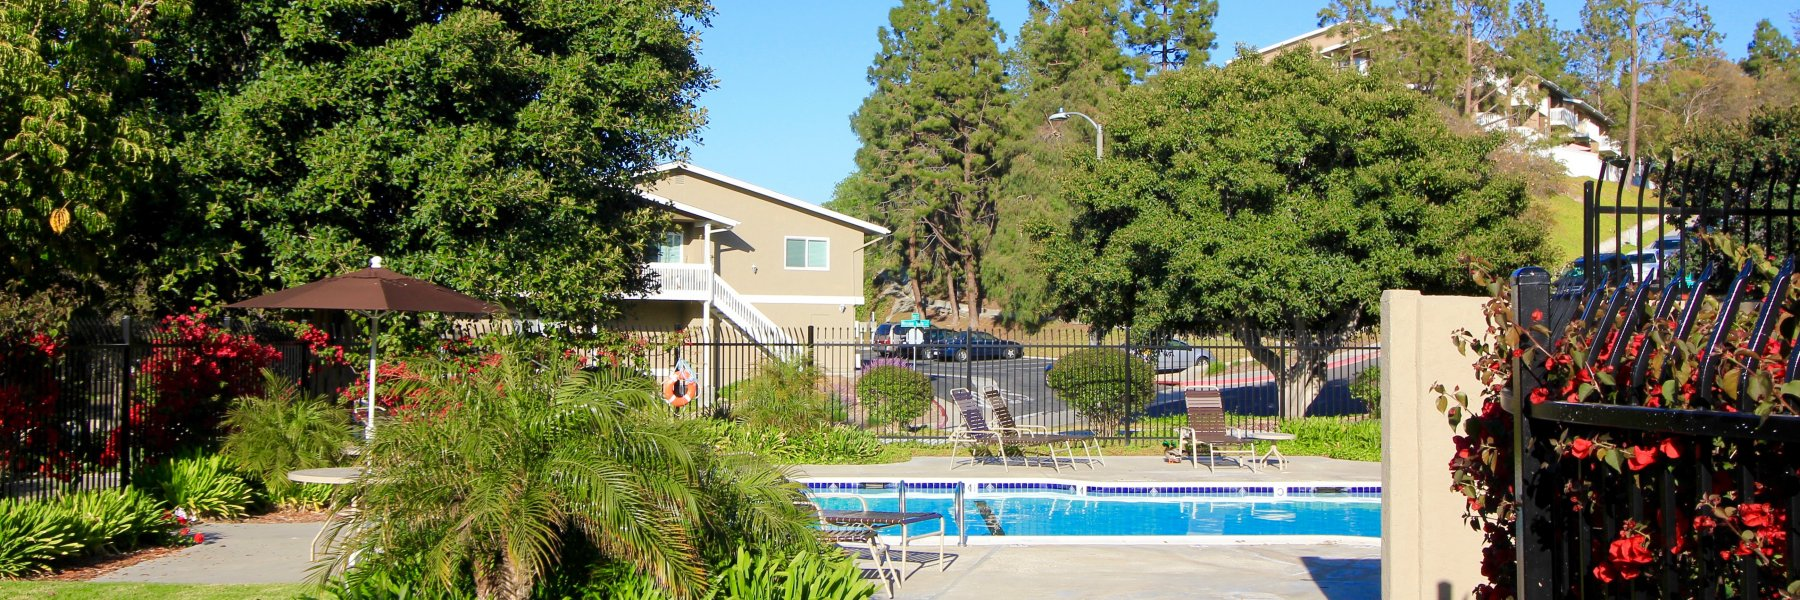 Quail Ridge is a community of homes in Oceanside California